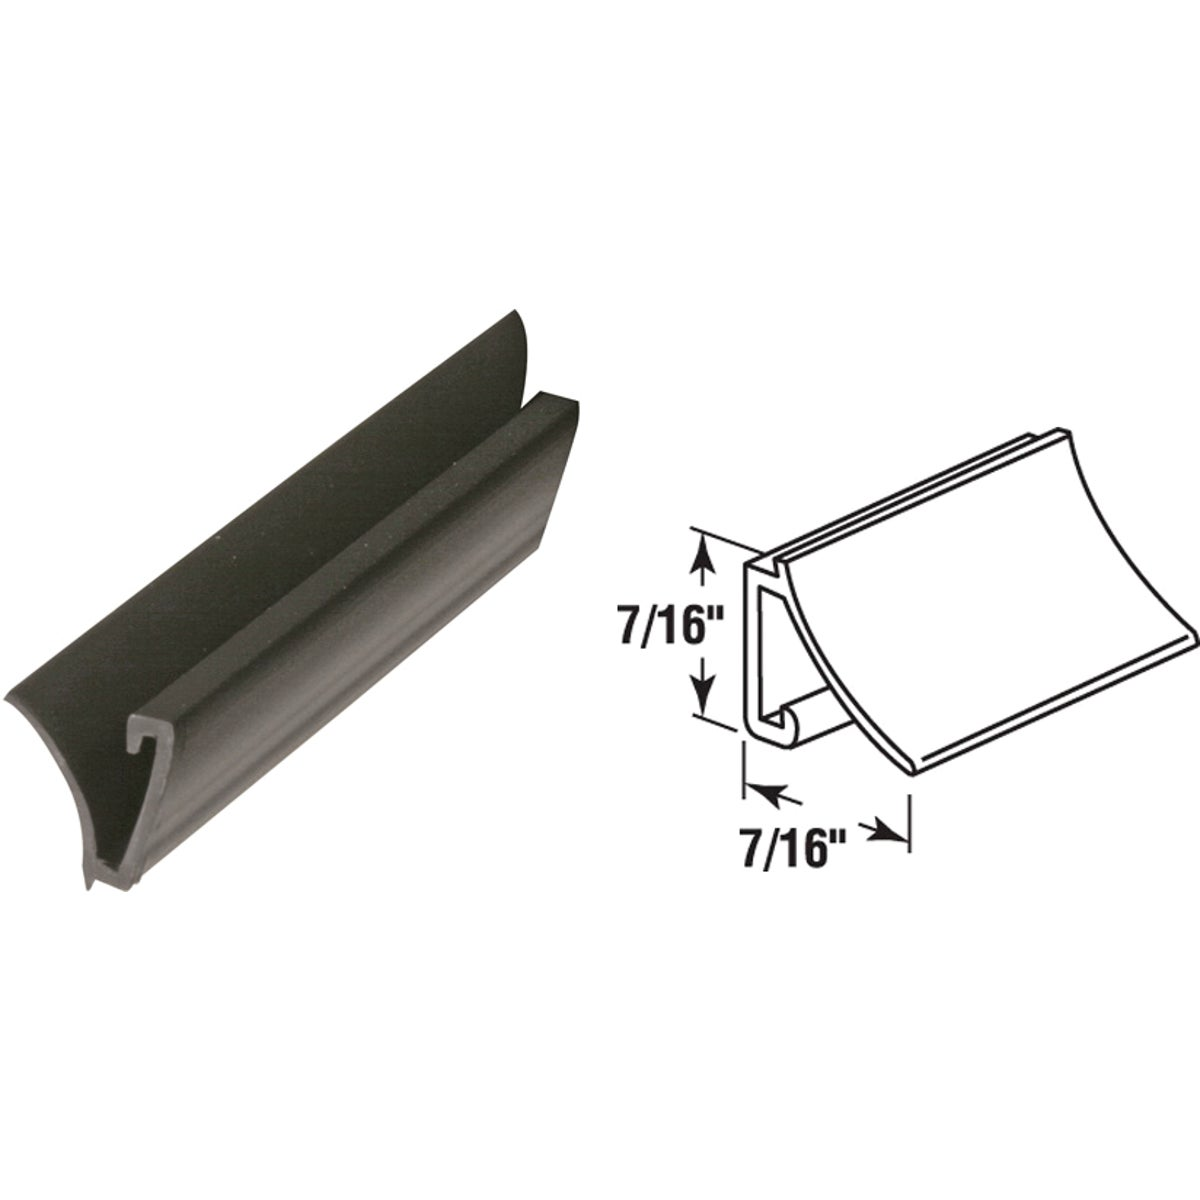 "72"" BLK RIGID SPLINE - P7815 by Prime Line Products"